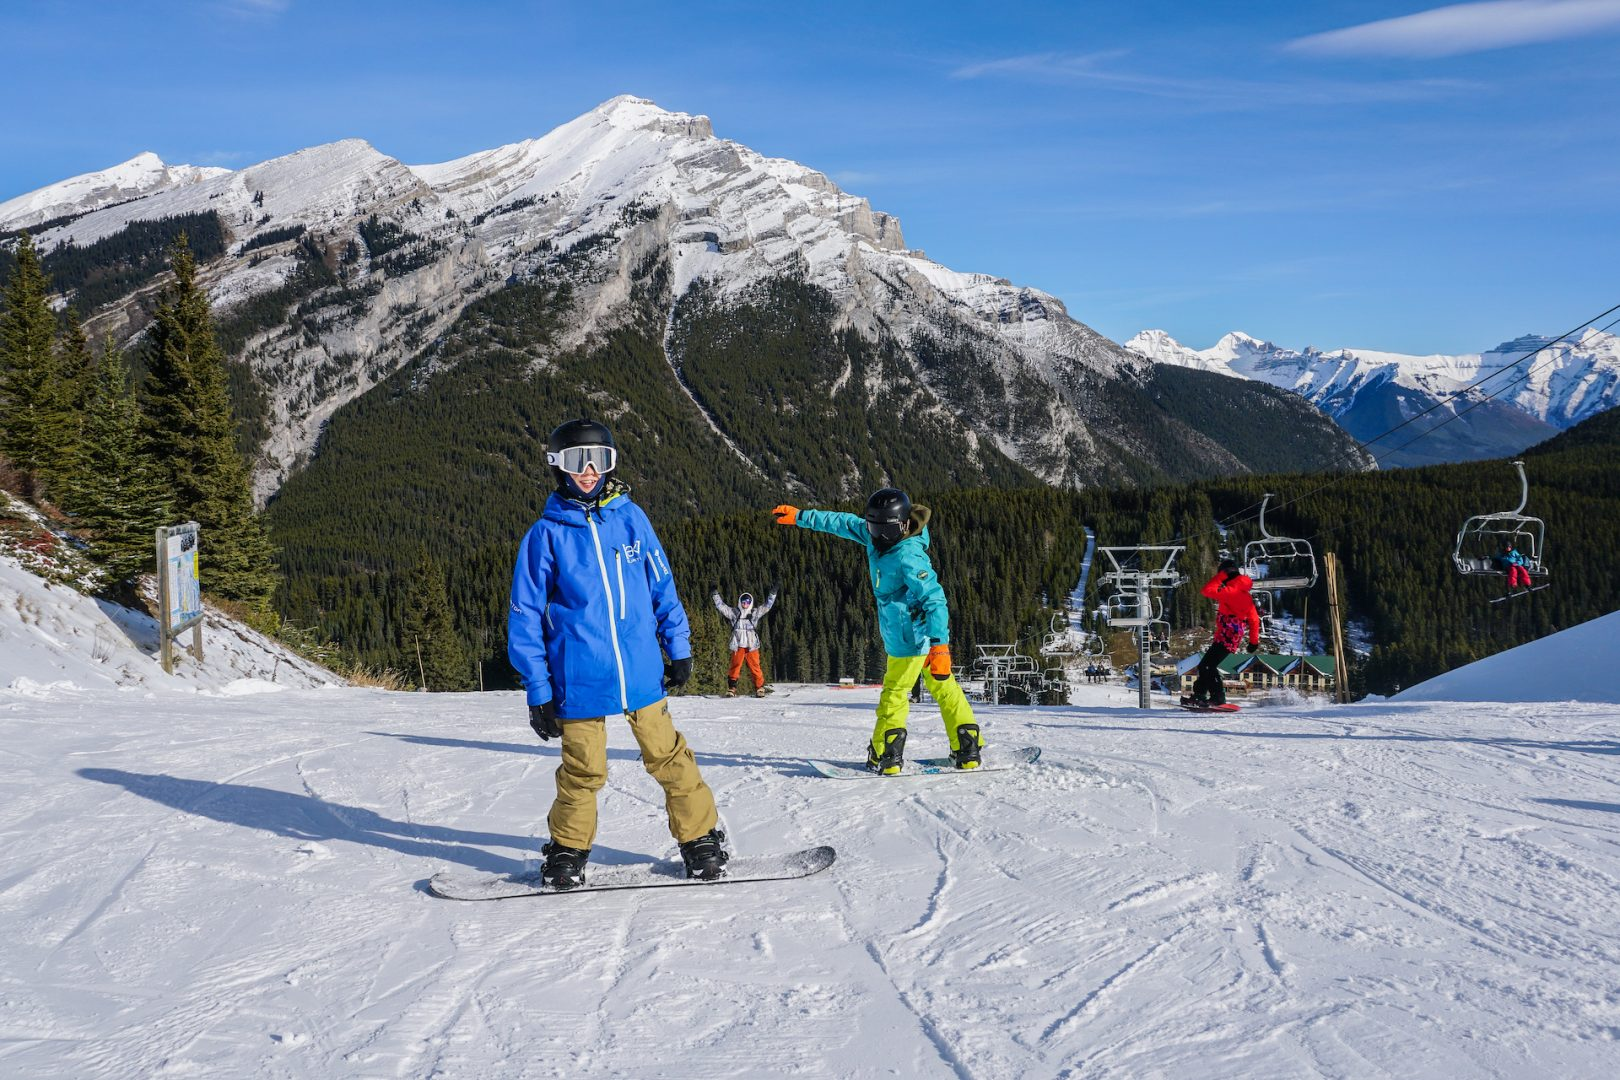 Boys snowboarding at Mt. Norquay, Banff National Park.